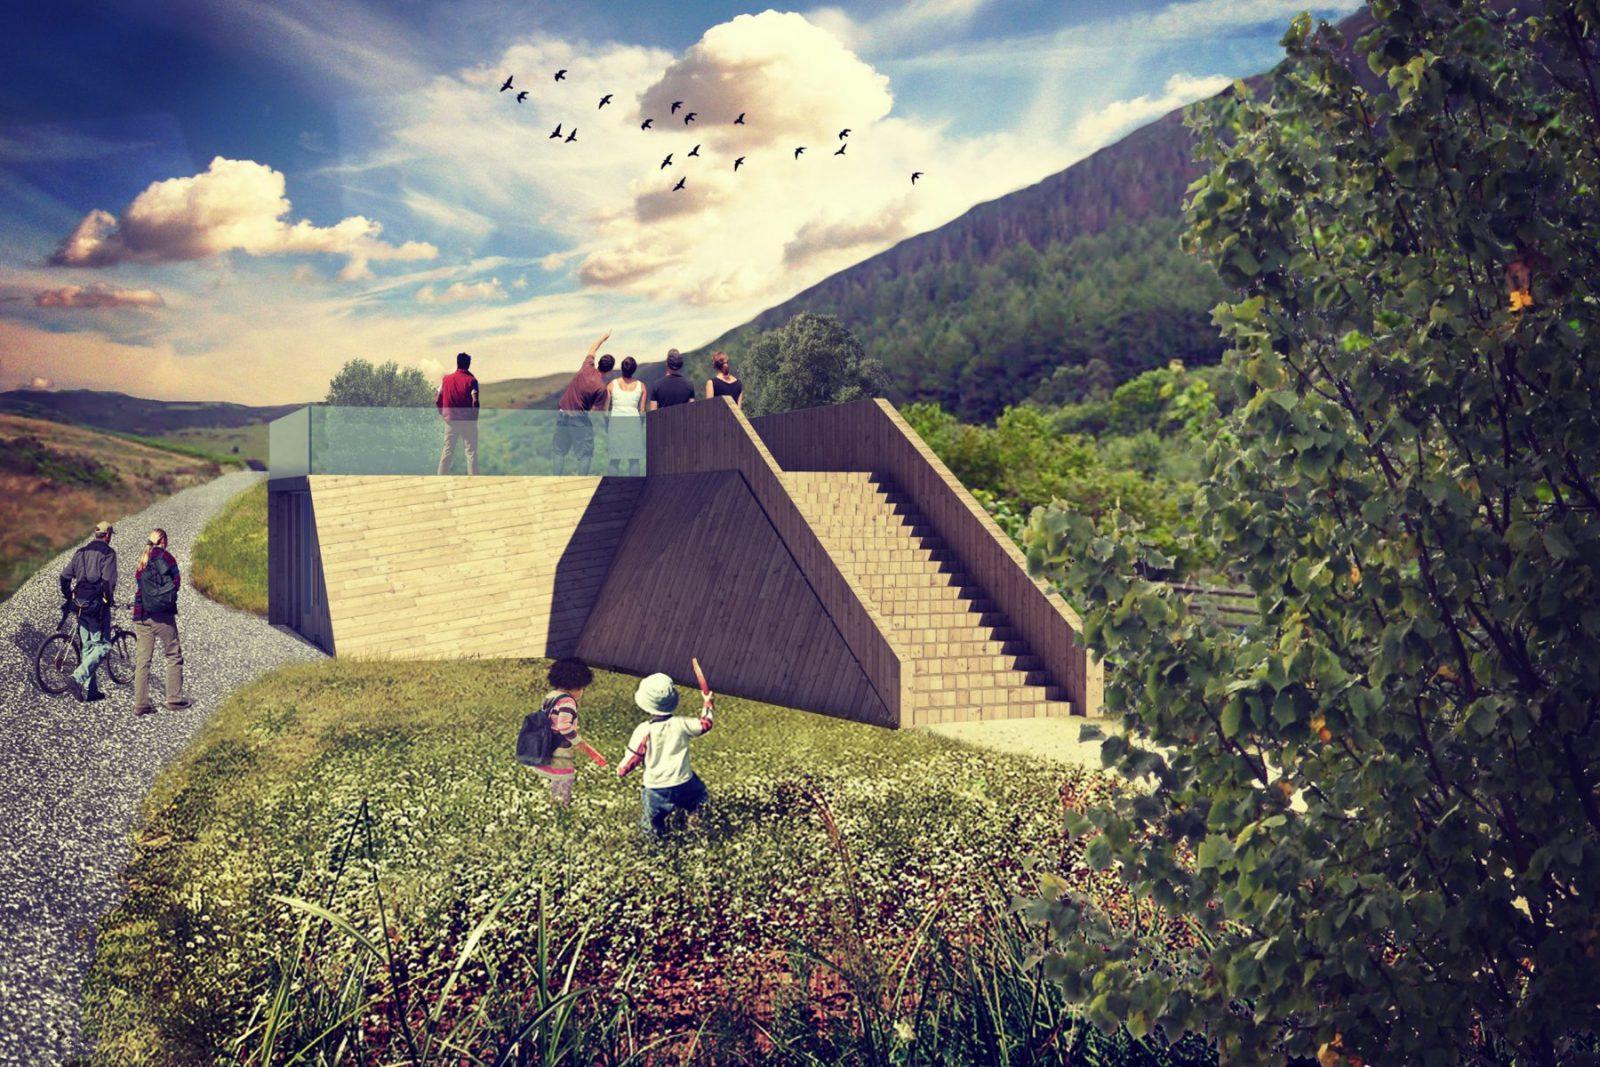 gilfach nature reserve visitor centre wales architects jersey1